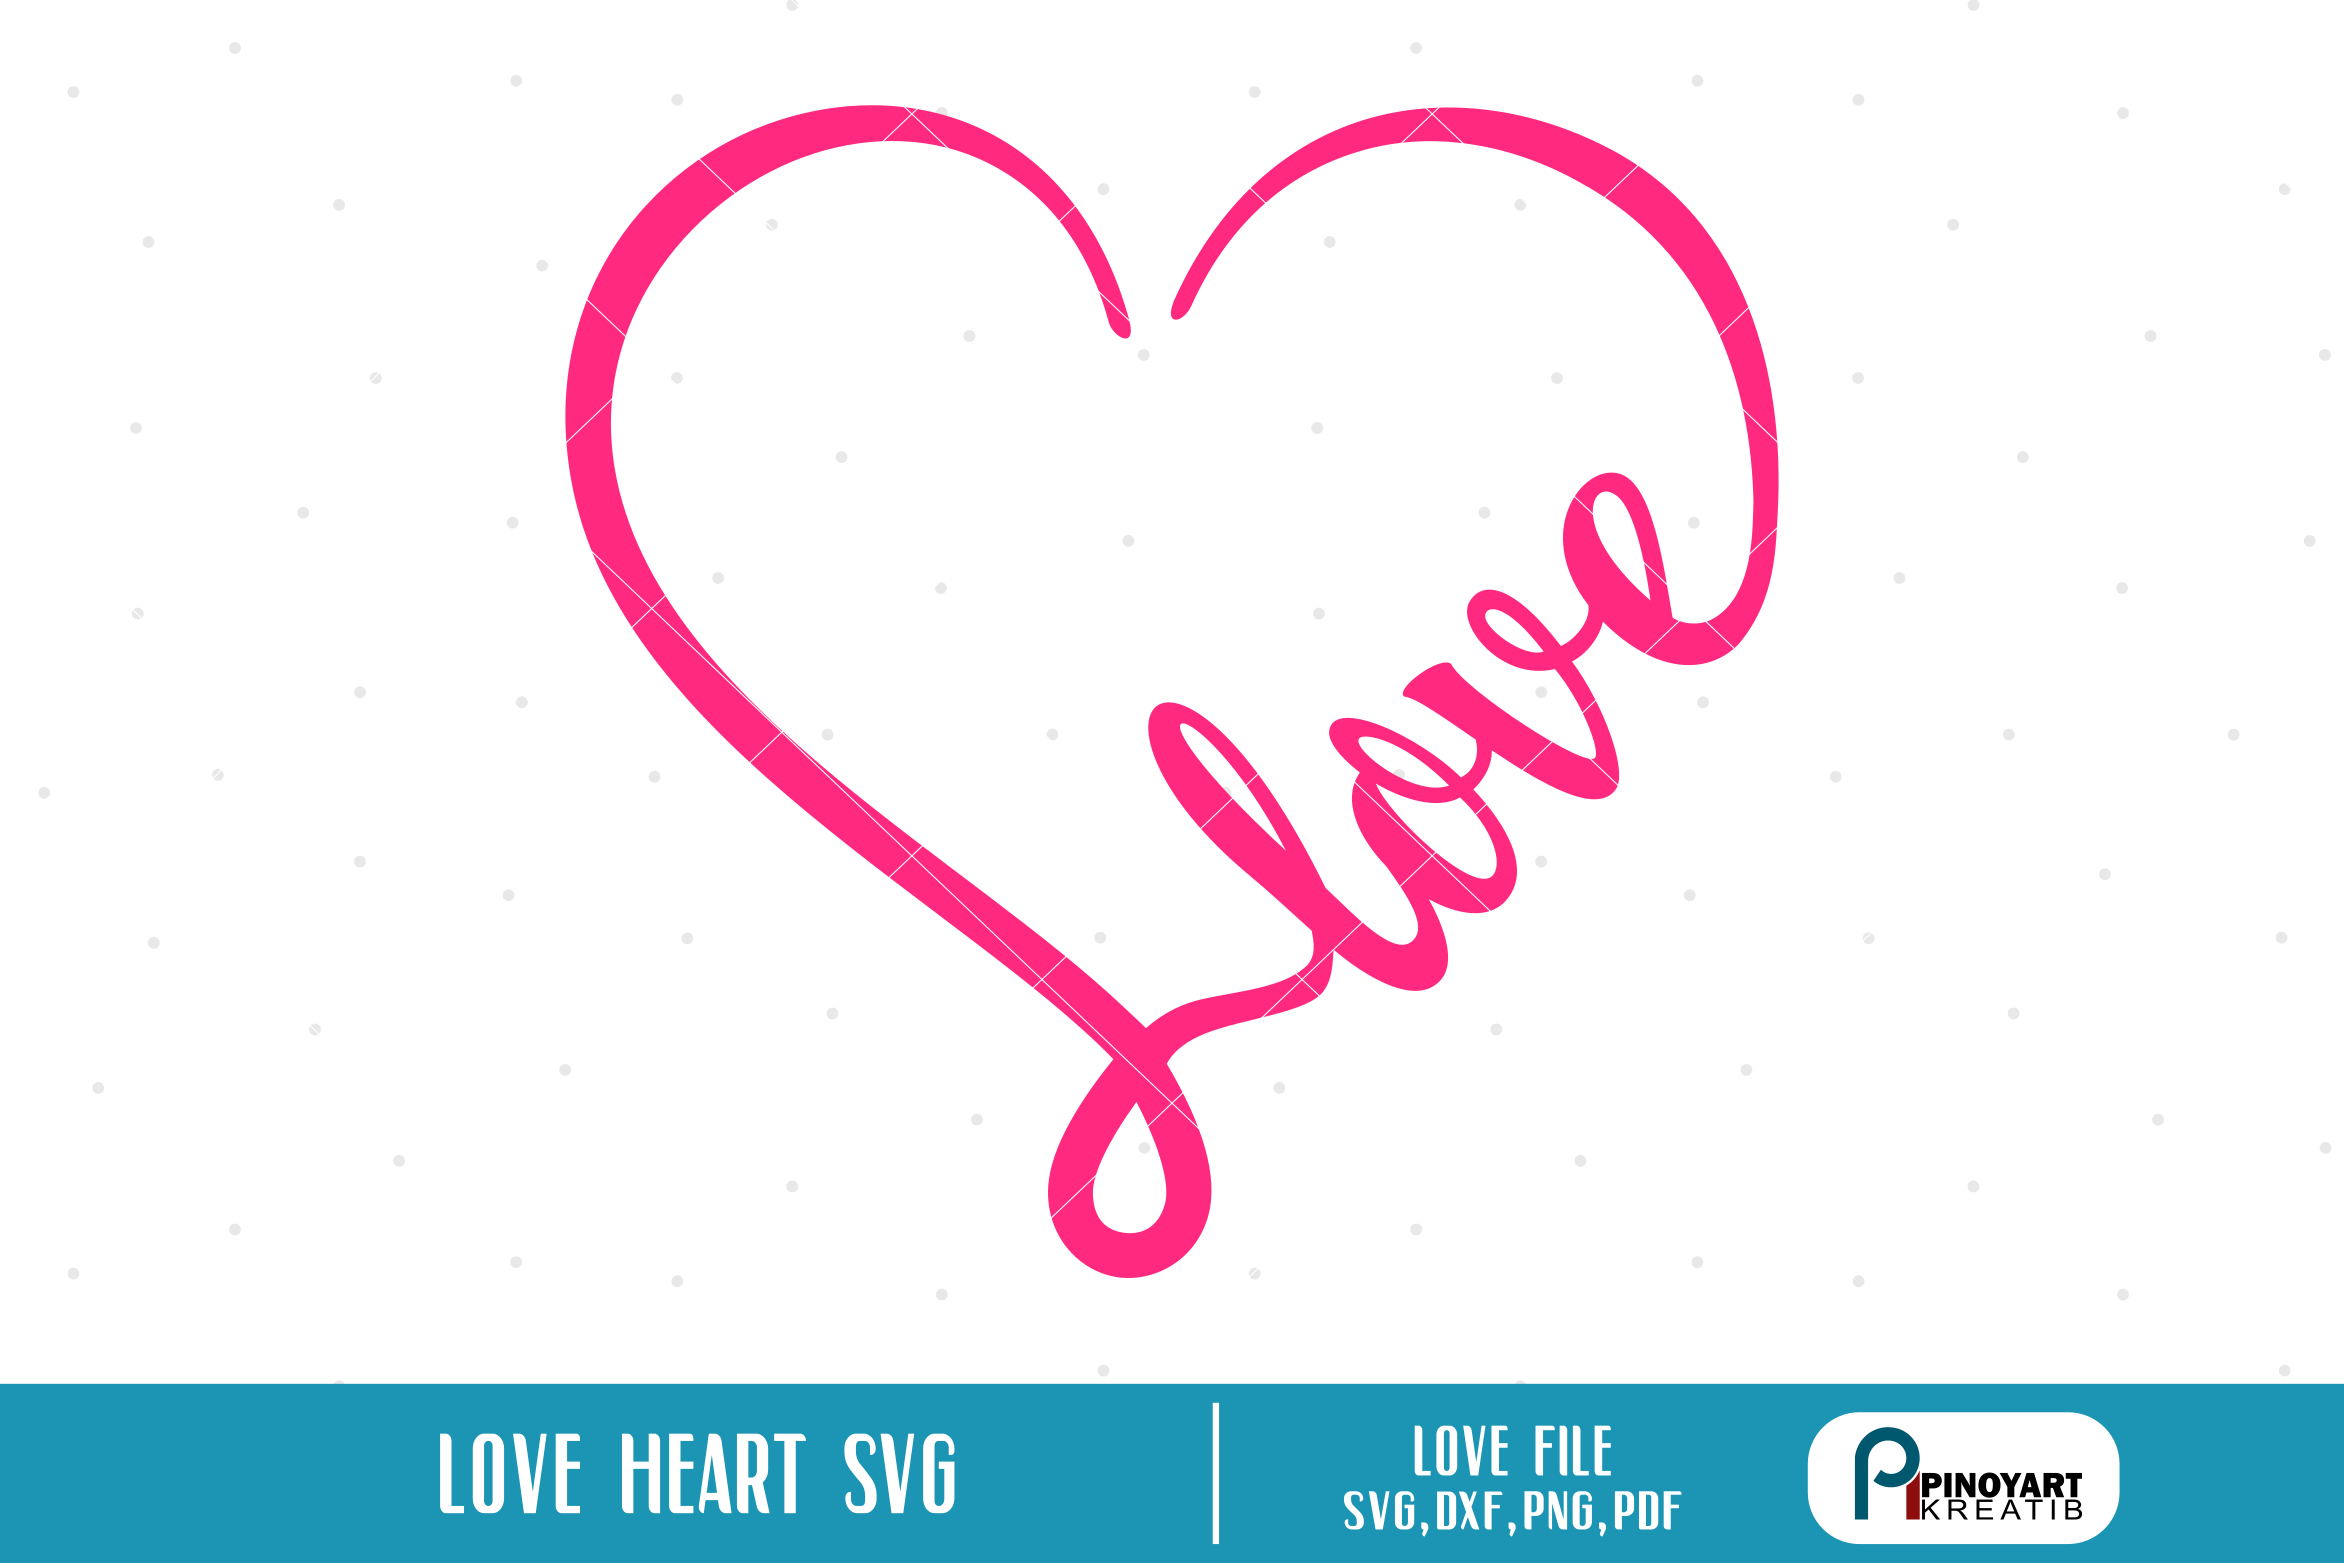 Download Free Love Heart Graphic By Pinoyartkreatib Creative Fabrica for Cricut Explore, Silhouette and other cutting machines.